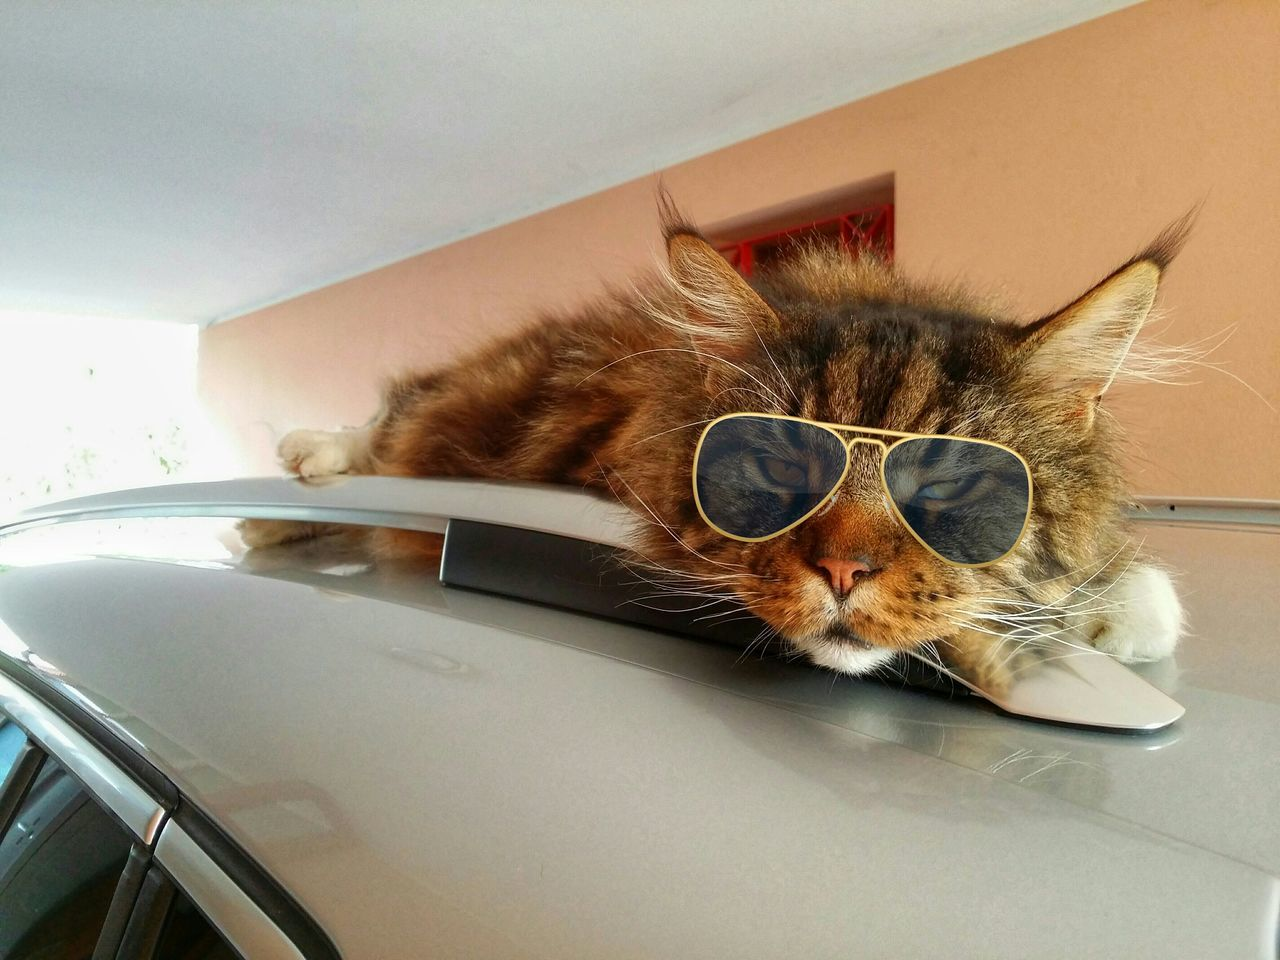 Cool Max Cats Pets Summer Sunglasses Funny FUNNY ANIMALS Maine Coon Cats Cats Lovers